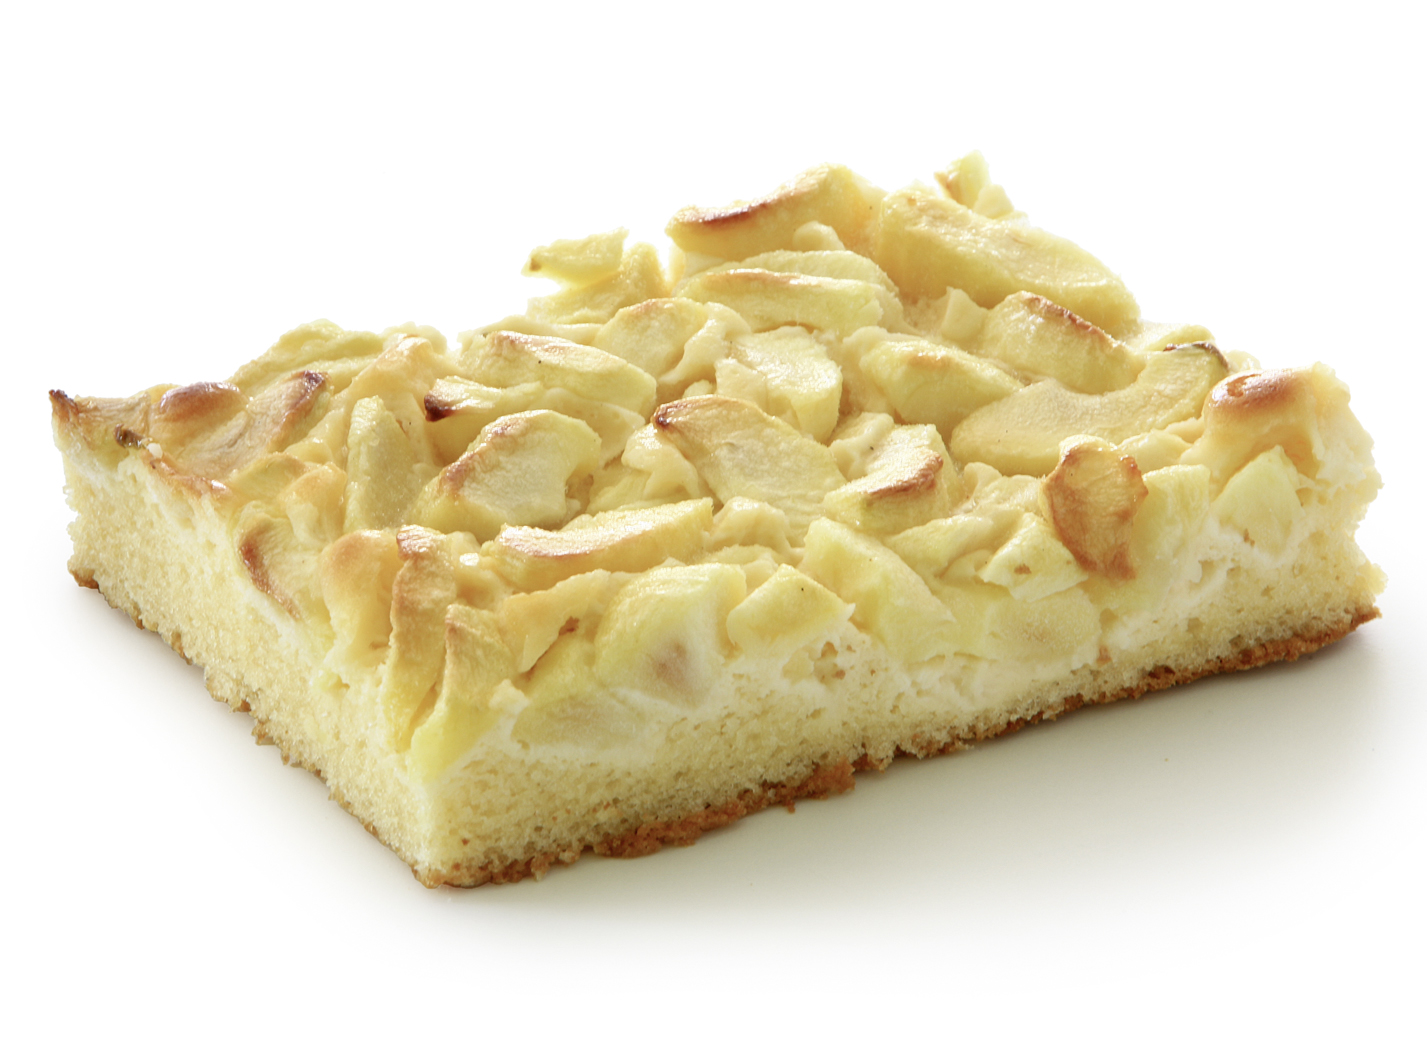 Apple cake without raisins - Pastry with 42% apples/ thaw only measures: length: 190 mm width: 135 mm height: 40 mm